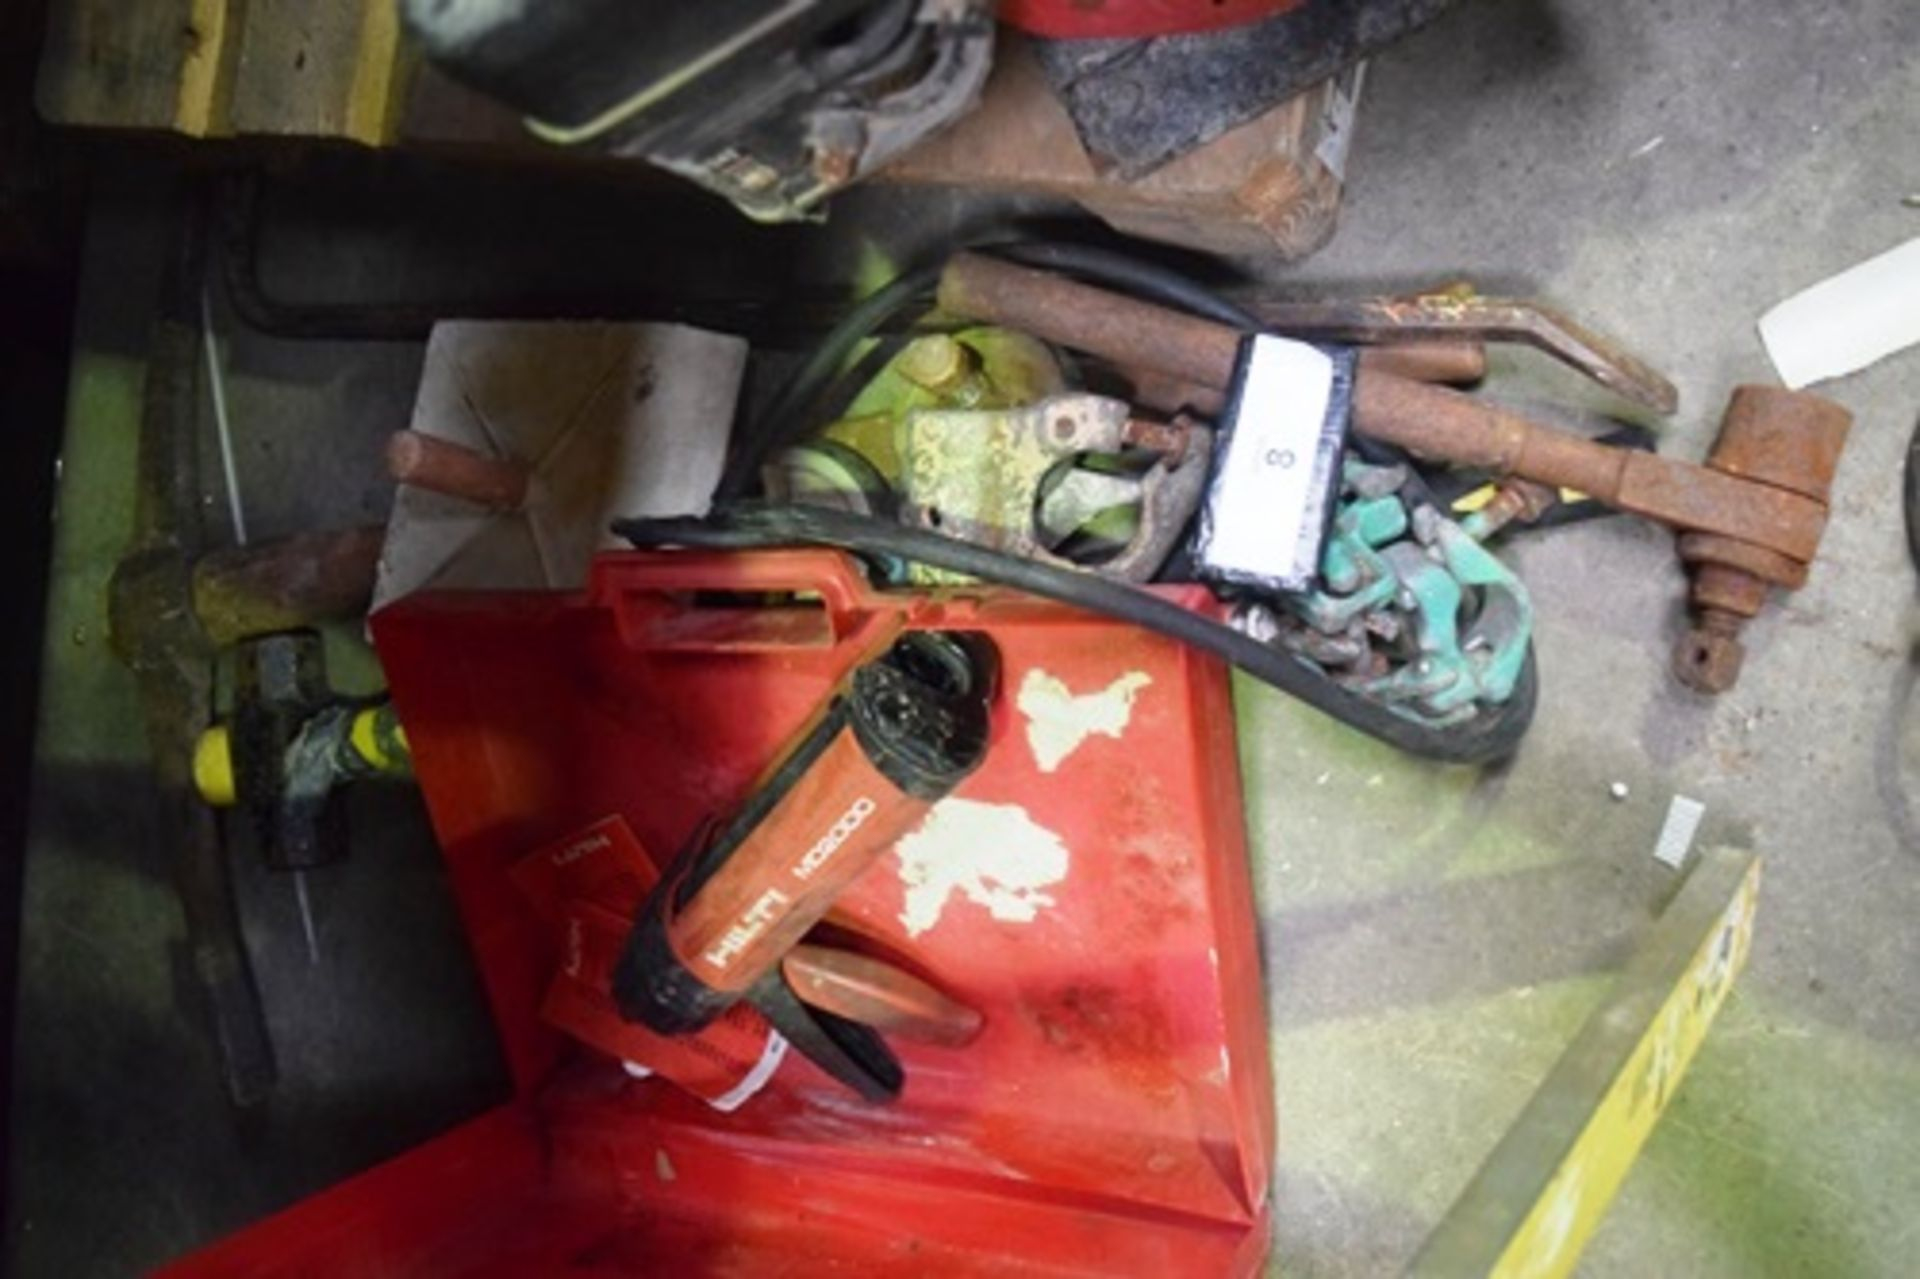 Lot 8 - Building tools and equipment including Hilti MD2000 gun, Stabila 1m level, sledge and pick, drain